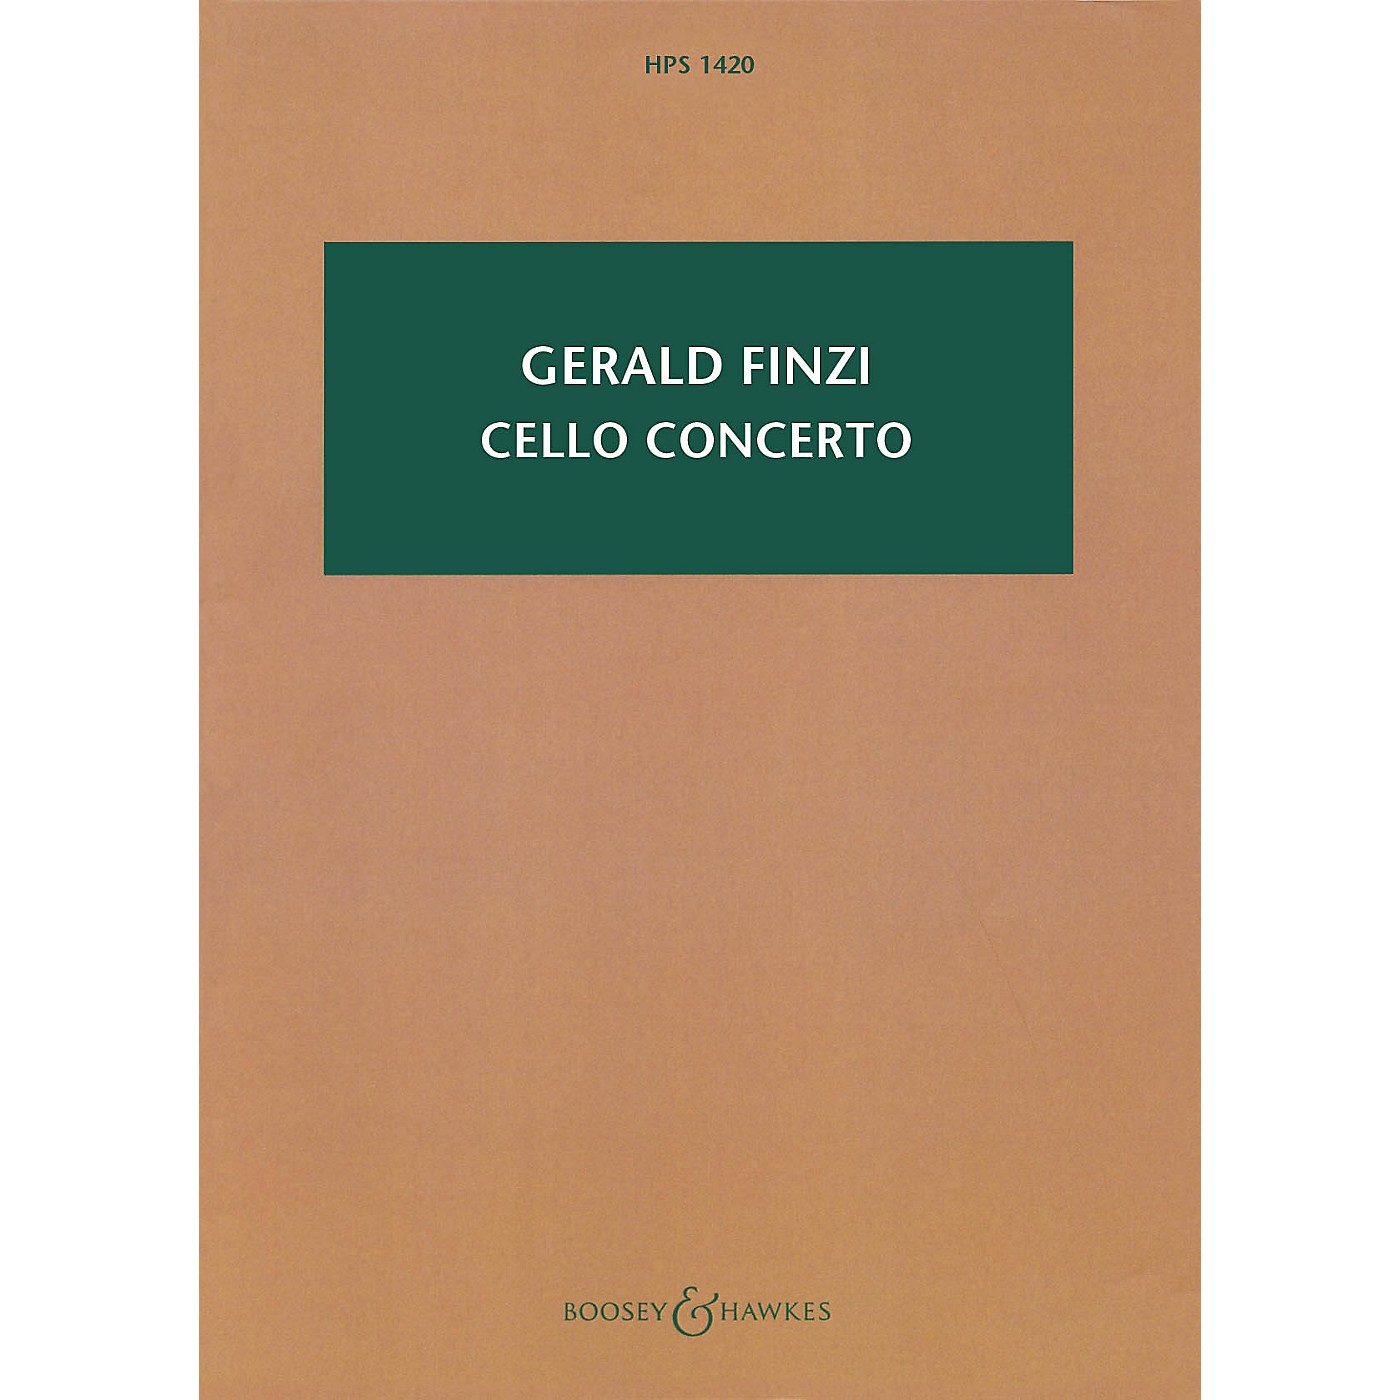 Boosey and Hawkes Cello Concerto (Revised 2009 Study Score) Boosey & Hawkes Scores/Books Series Softcover by Gerald Finzi thumbnail